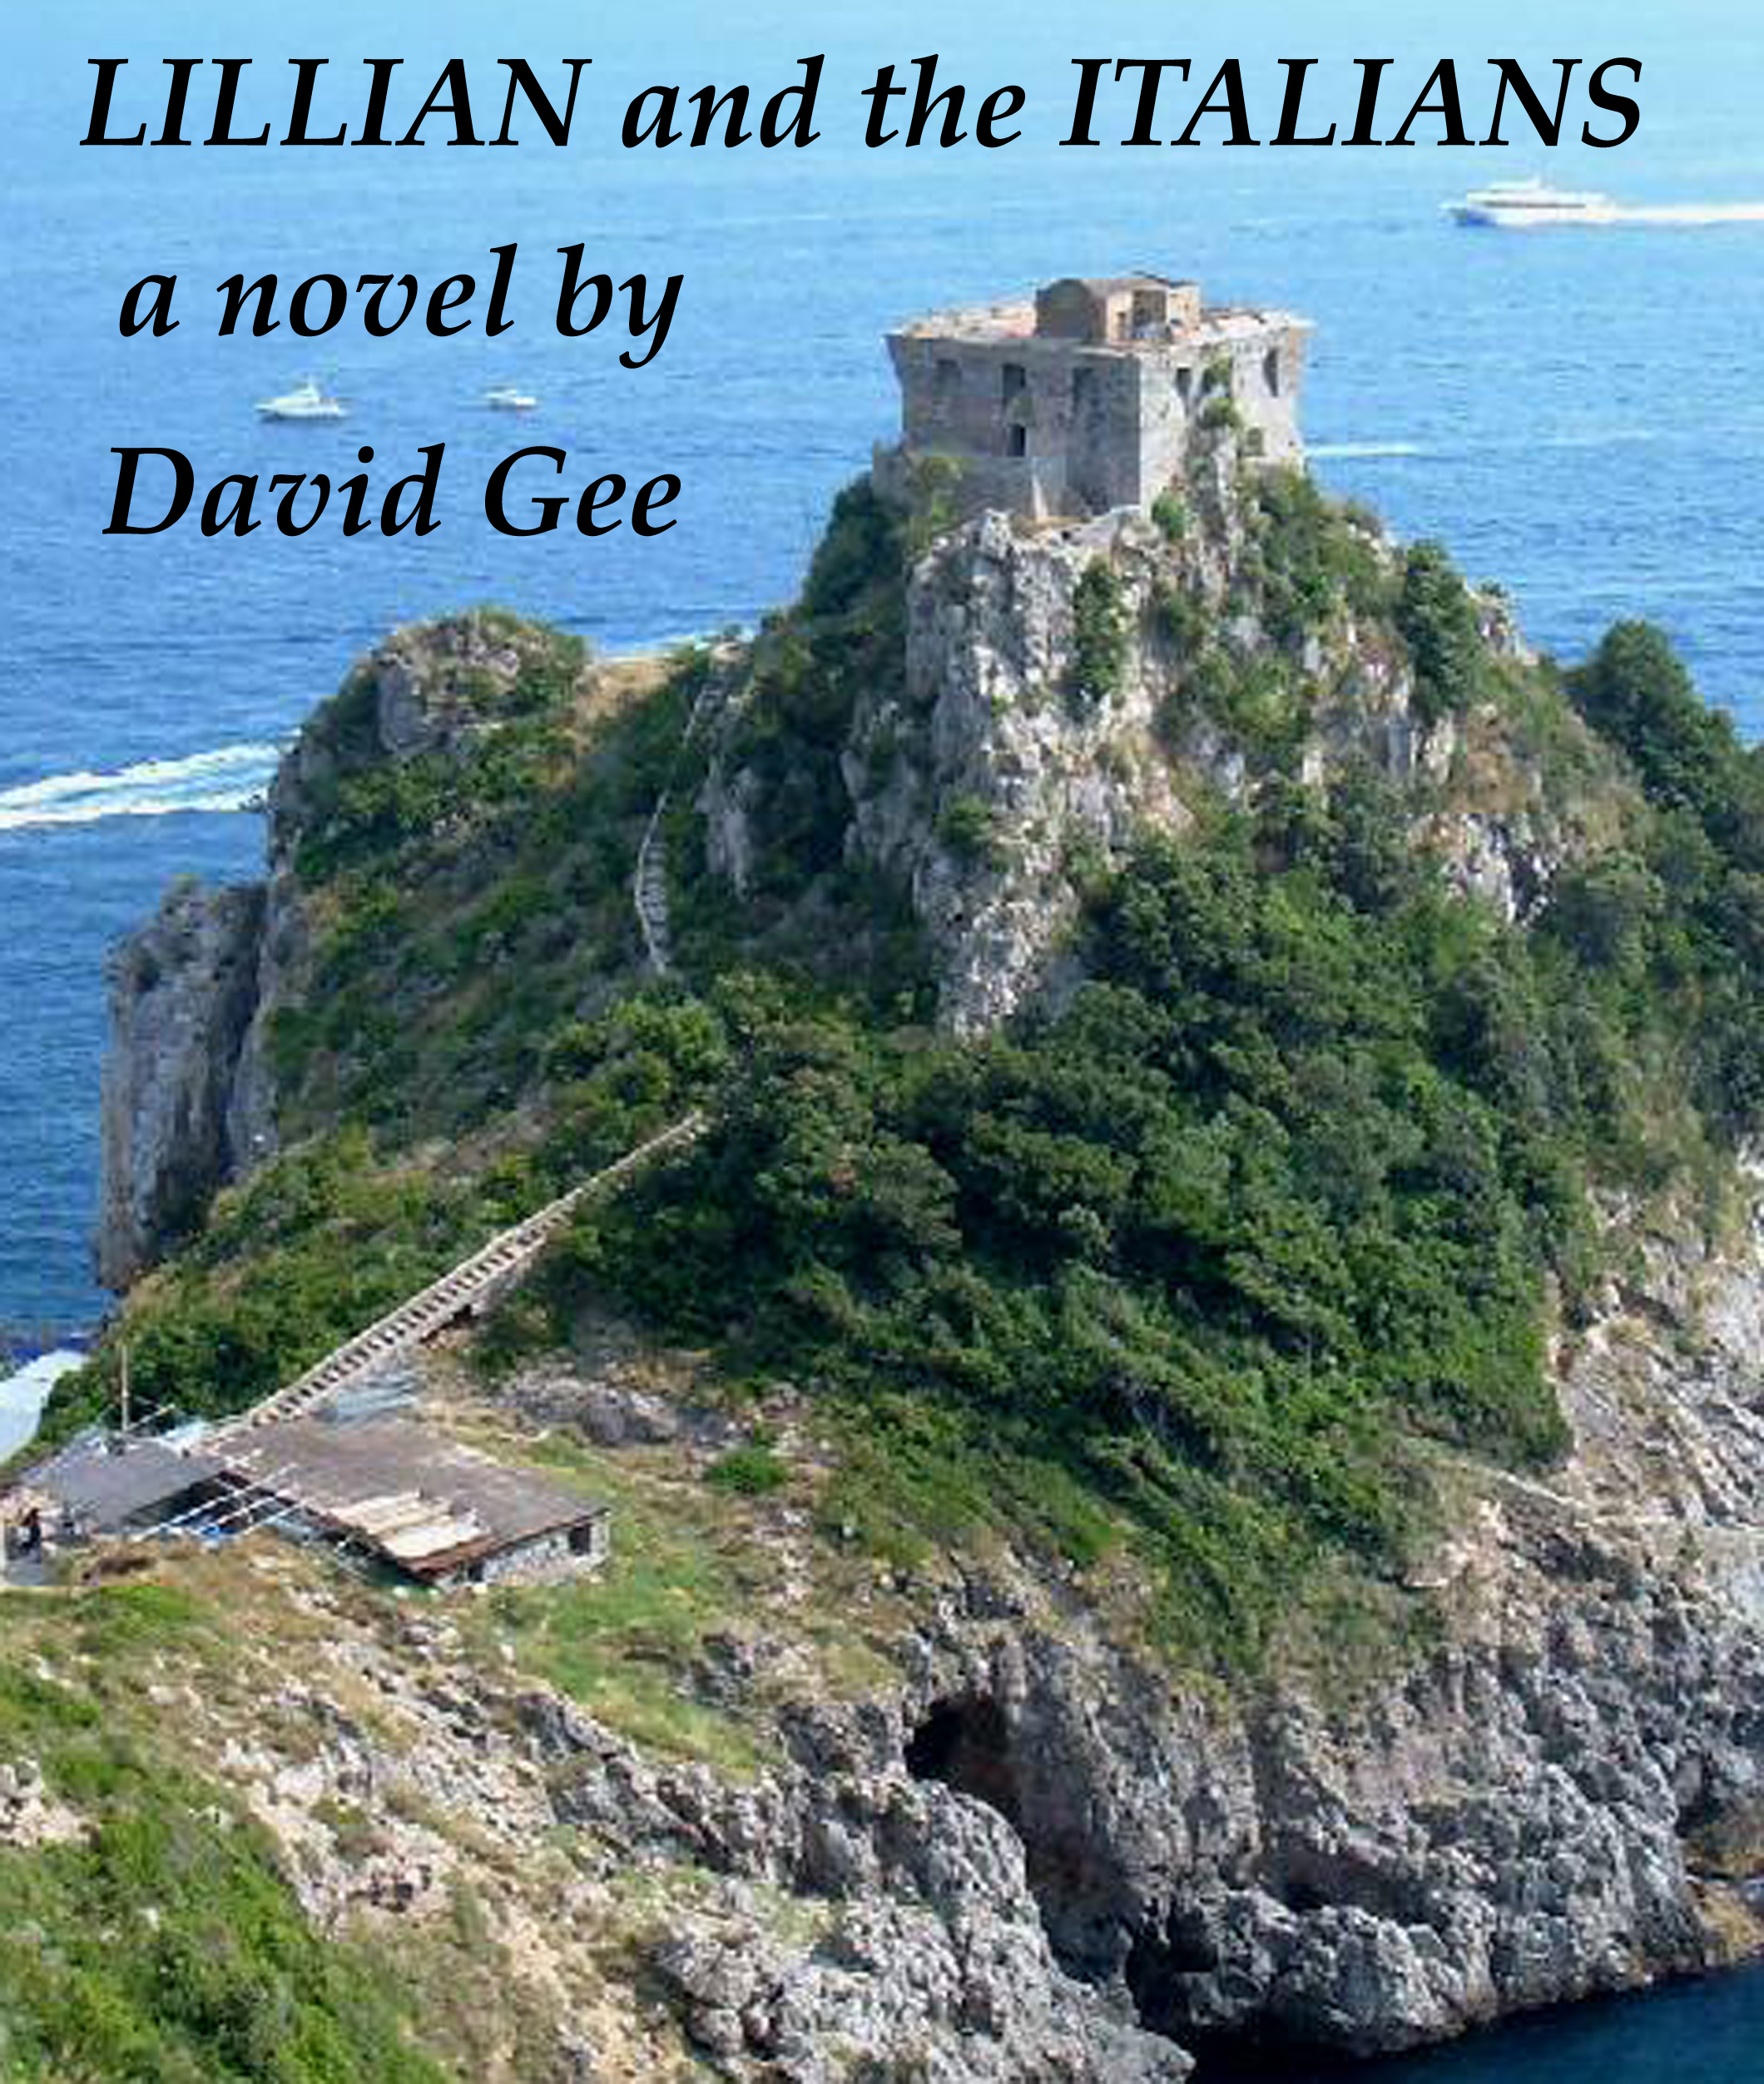 This fortress - outside Amalfi - is from the Saracen era. It's the setting for almost a third of the story.